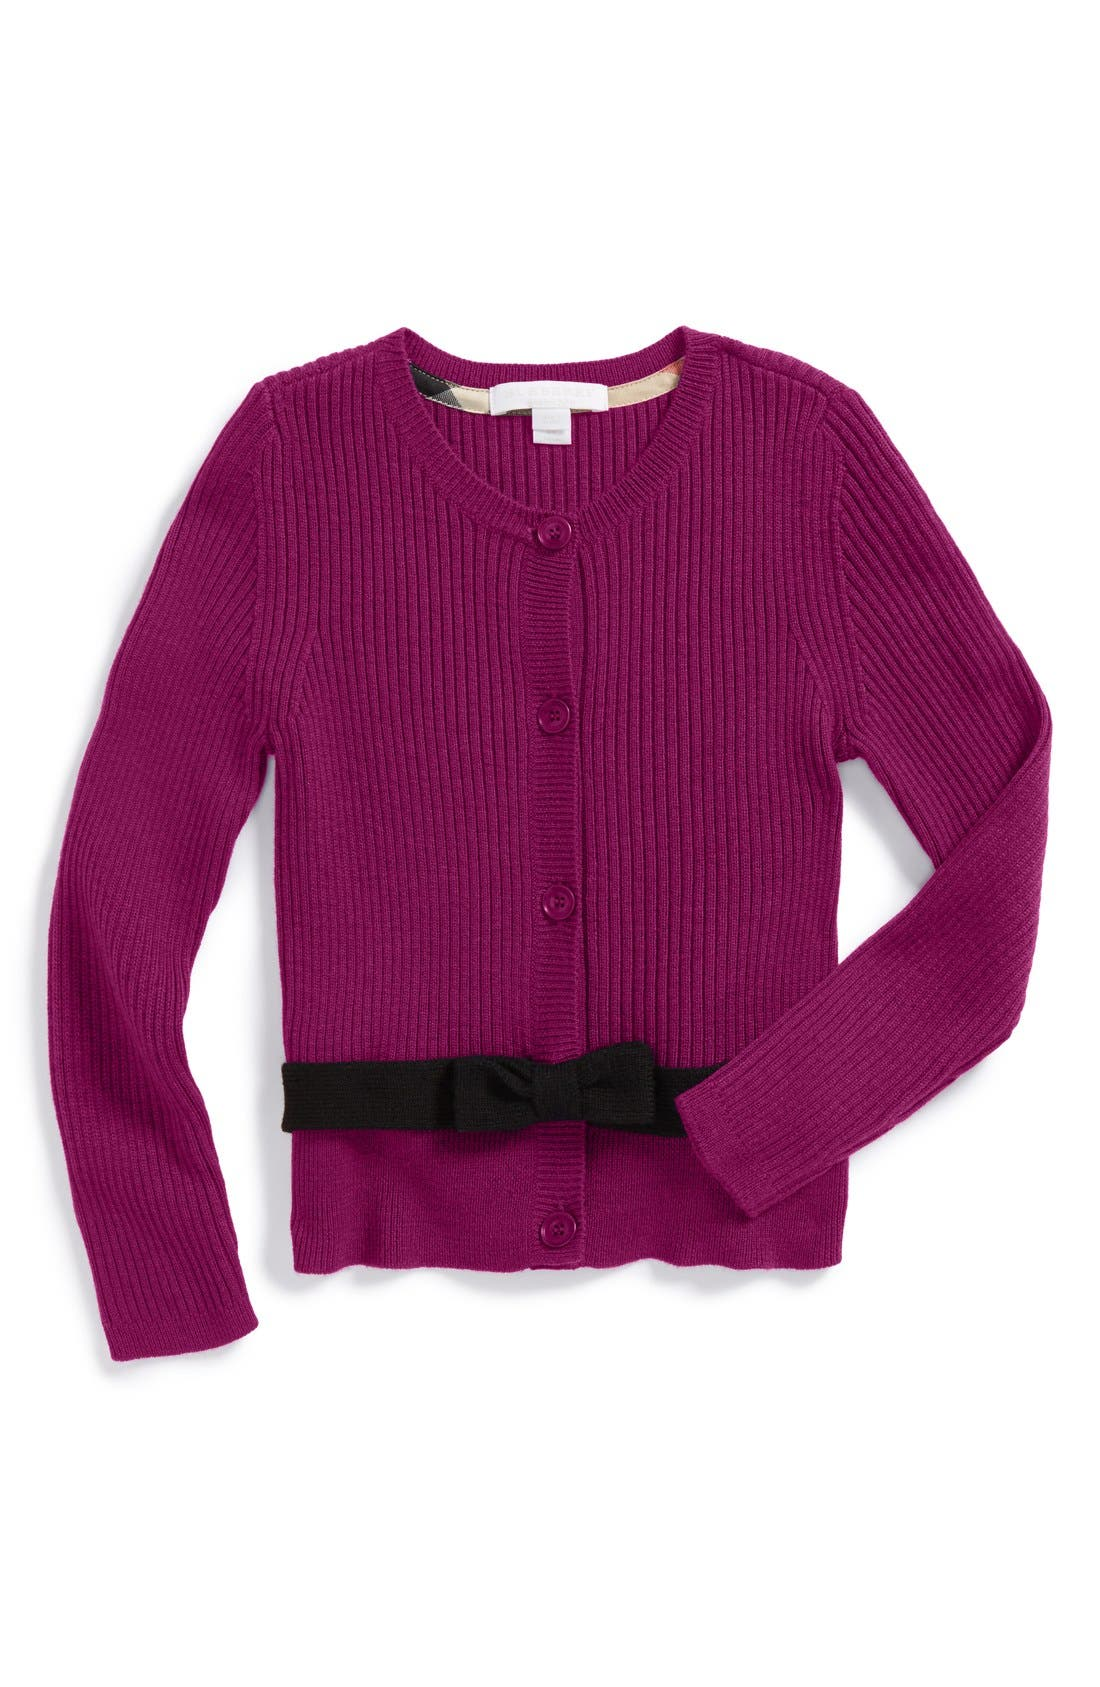 Alternate Image 1 Selected - Burberry Merino Wool Belted Cardigan (Little Girls & Big Girls)